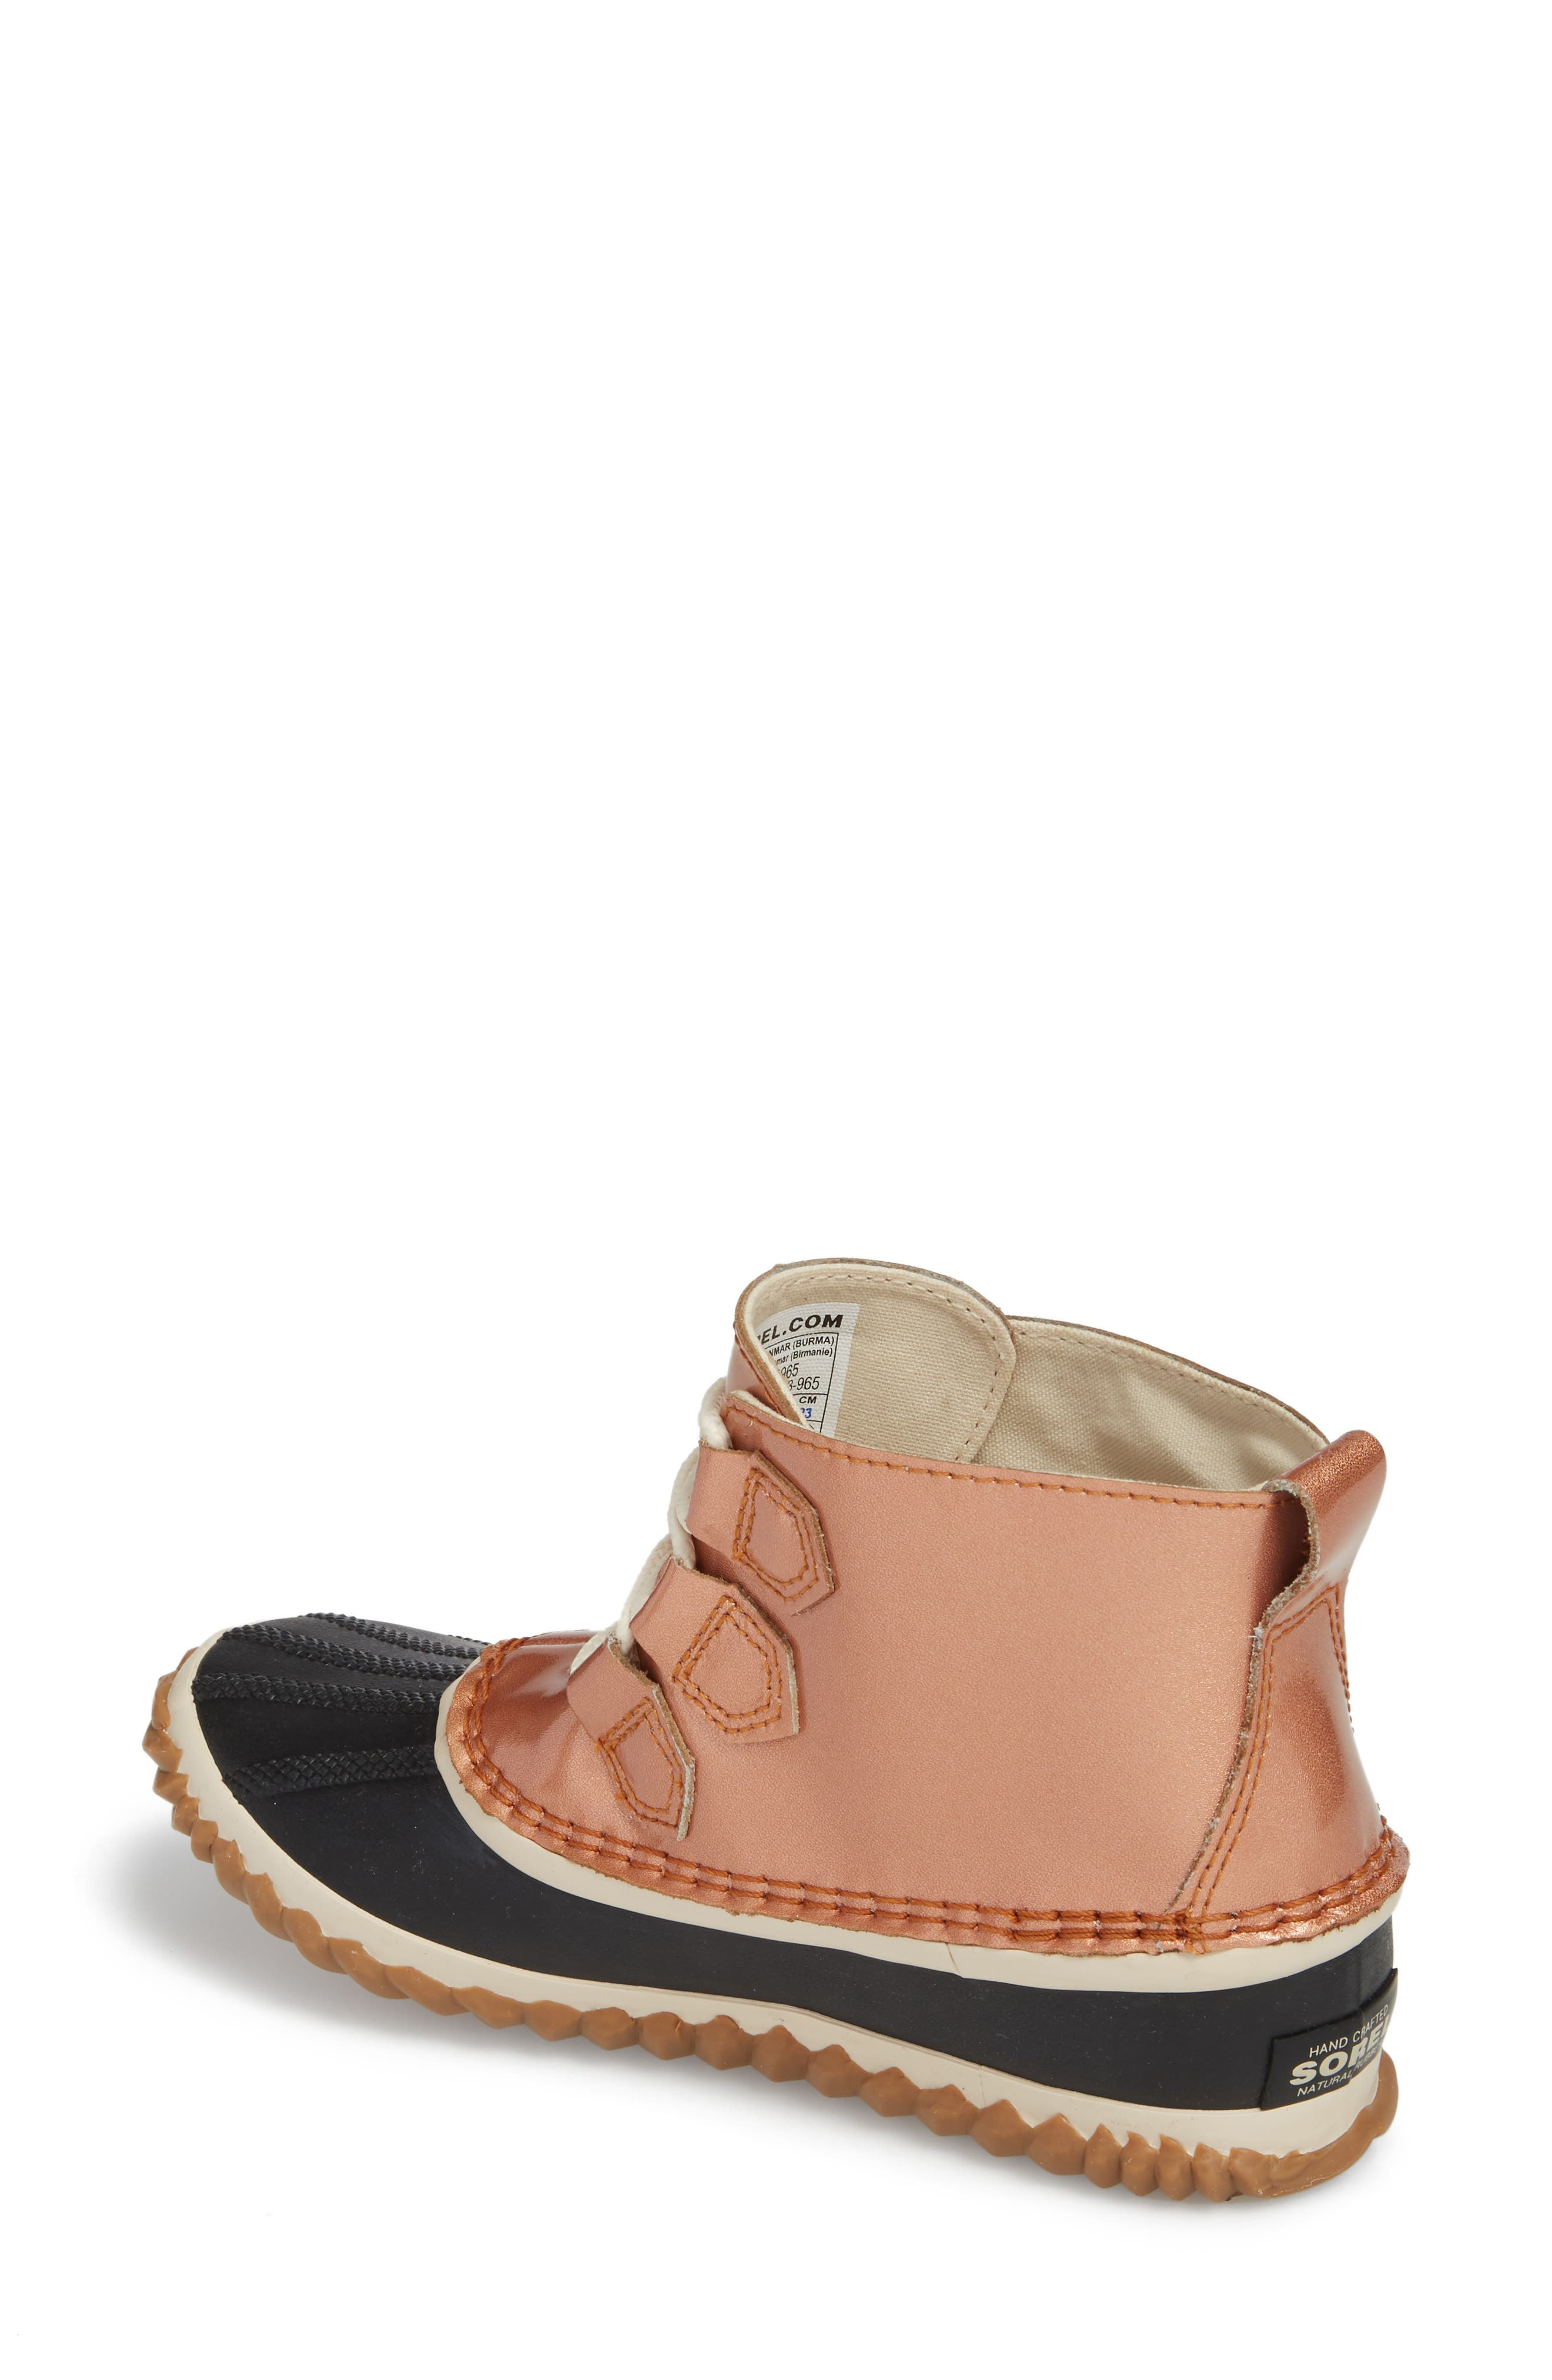 'Out N About' Leather Boot,                             Alternate thumbnail 12, color,